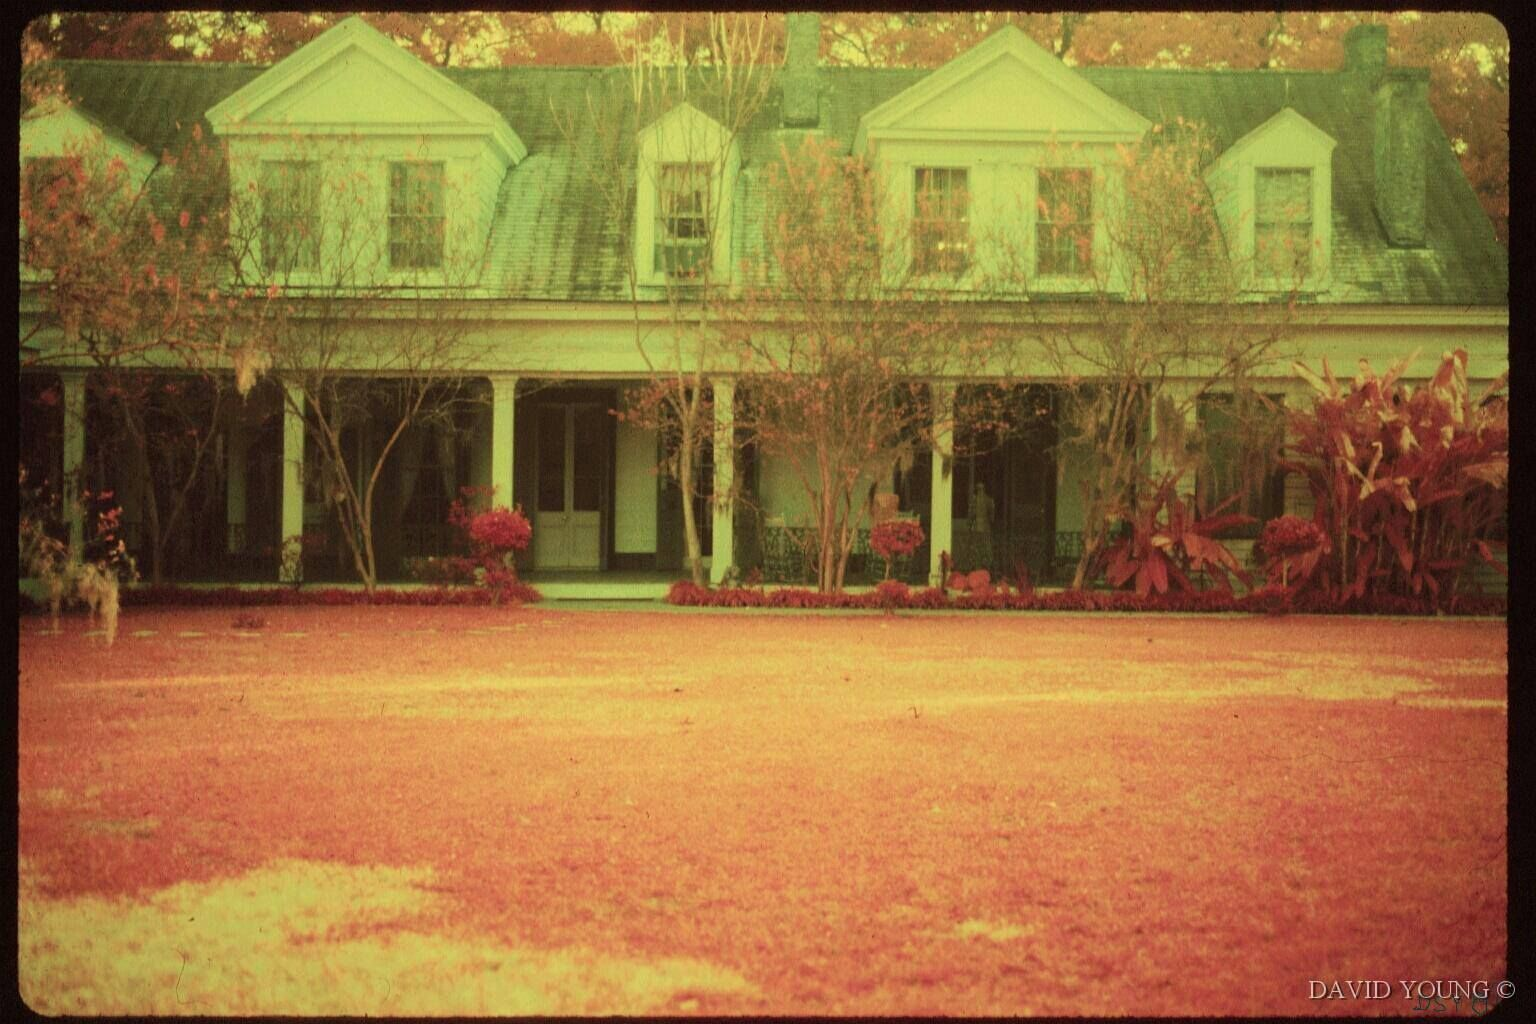 Photo taken at the Myrtles by Dave Young in the 1980s